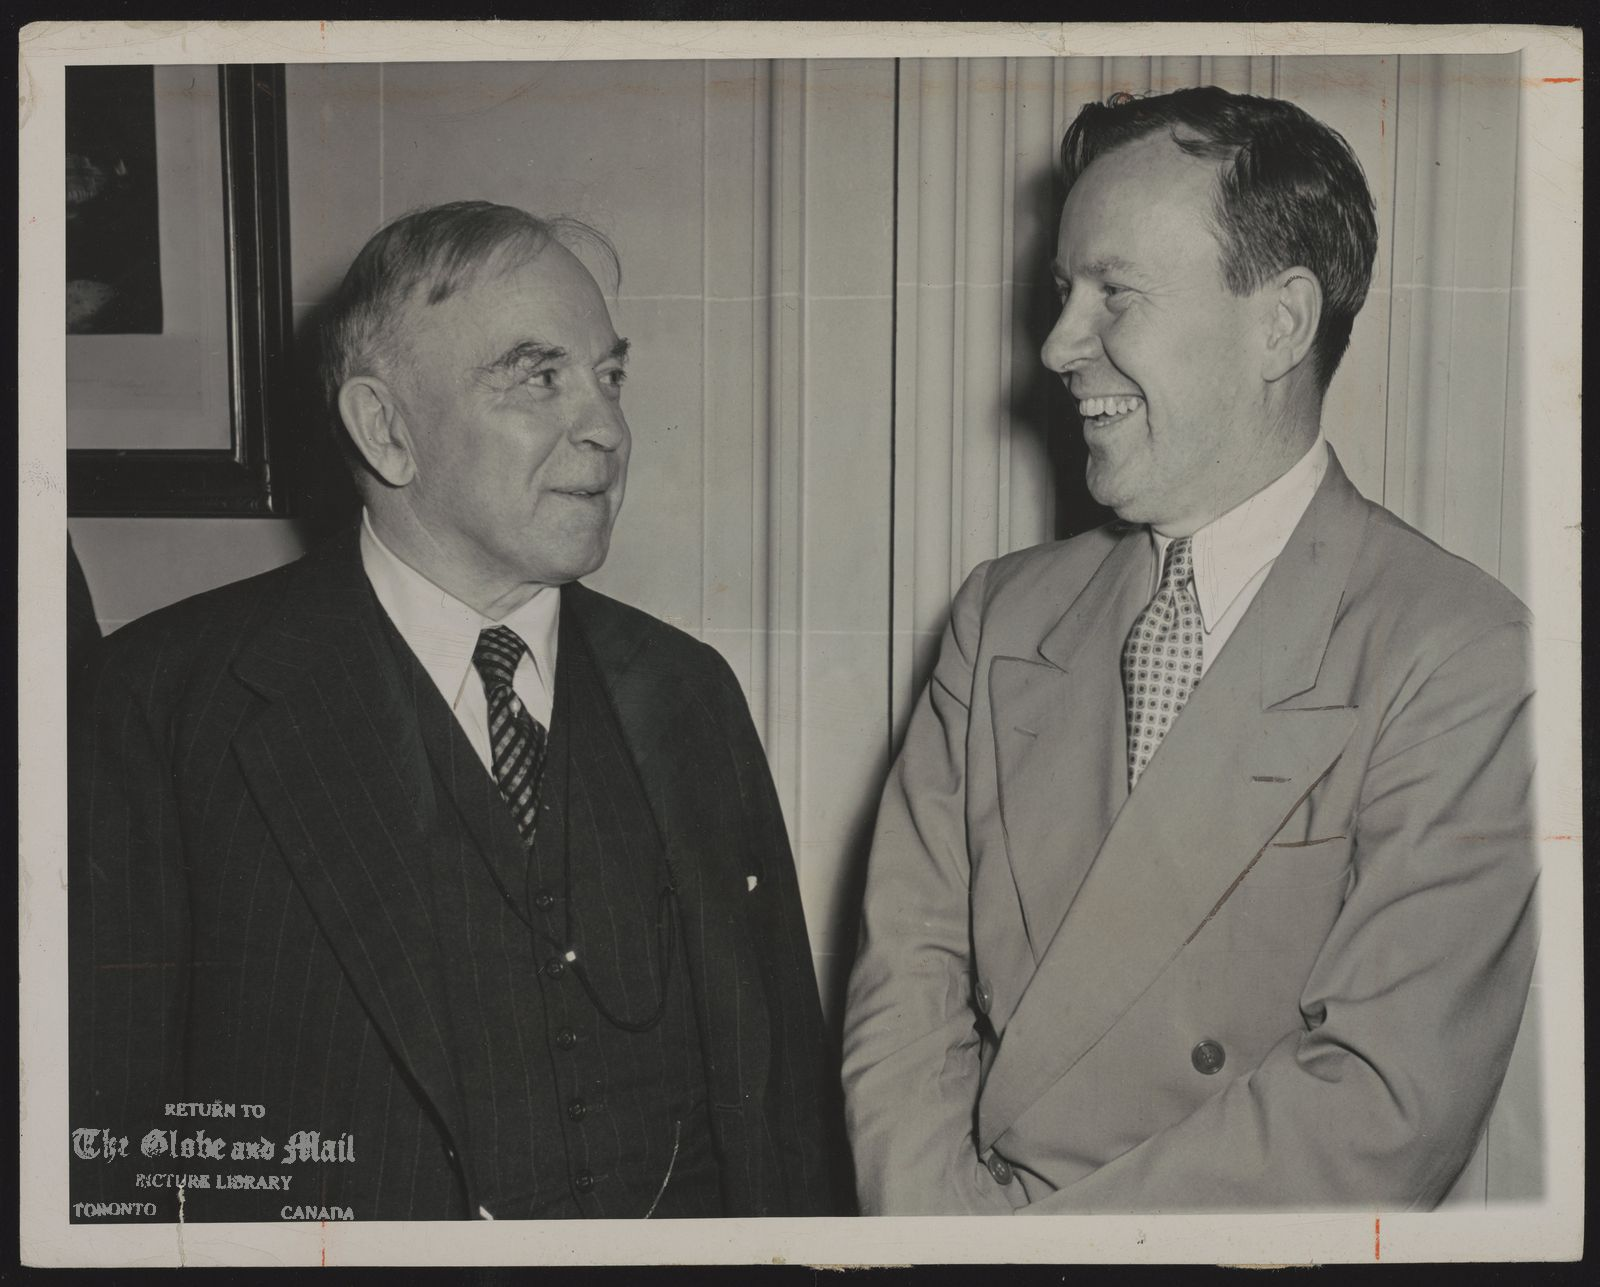 MacKENZIE KING Prime Minister of Canada. Added caption: Prime Minister MacKenzie King, left, of Canada meets Ambassador Lester B. Pearson at the Canadian Embassy in Washington, DC, September 29, 1945, following the Prime Minister's arrival by plane from Canada. King's itinerary will include a visit with President Truman and a stop in New York City. AP PHOTO